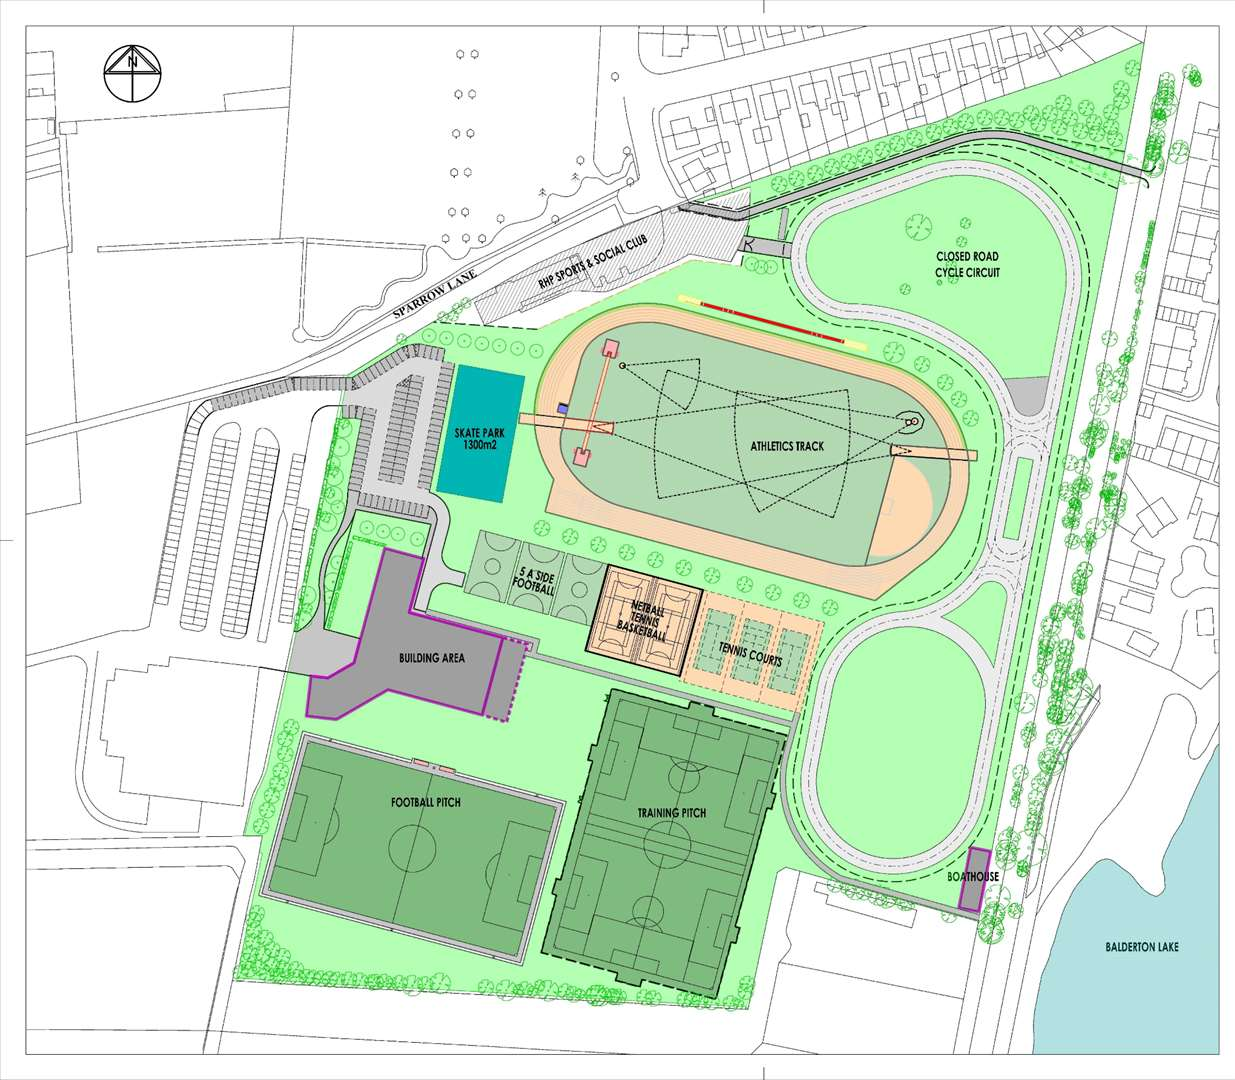 The site plan showing the position of pitches and other sports facilities.